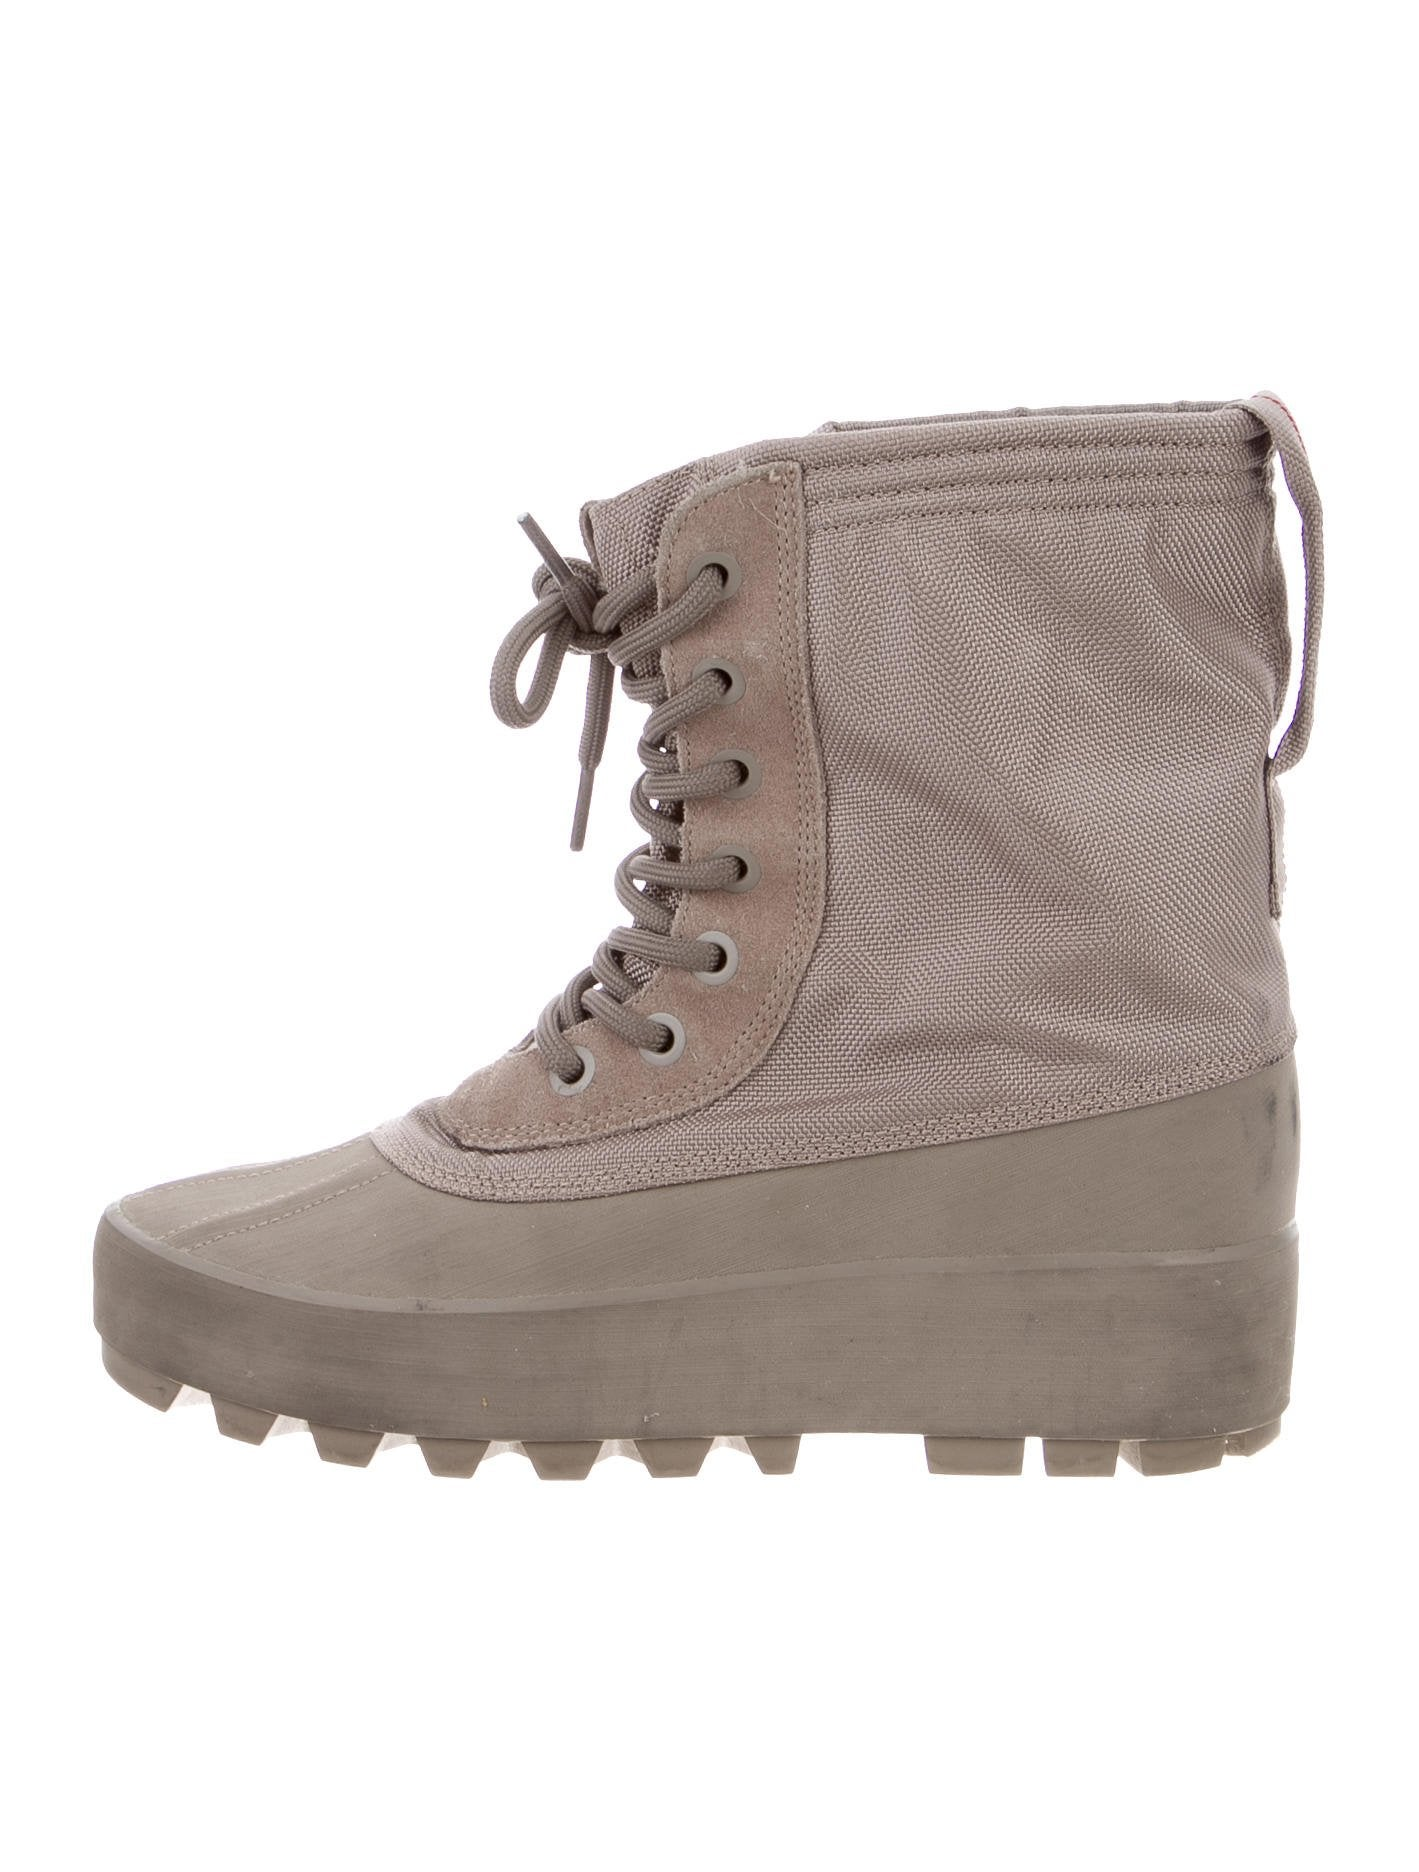 Perfect Yeezy 950 W Boots - Shoes - WYEEZ20420 | The RealReal